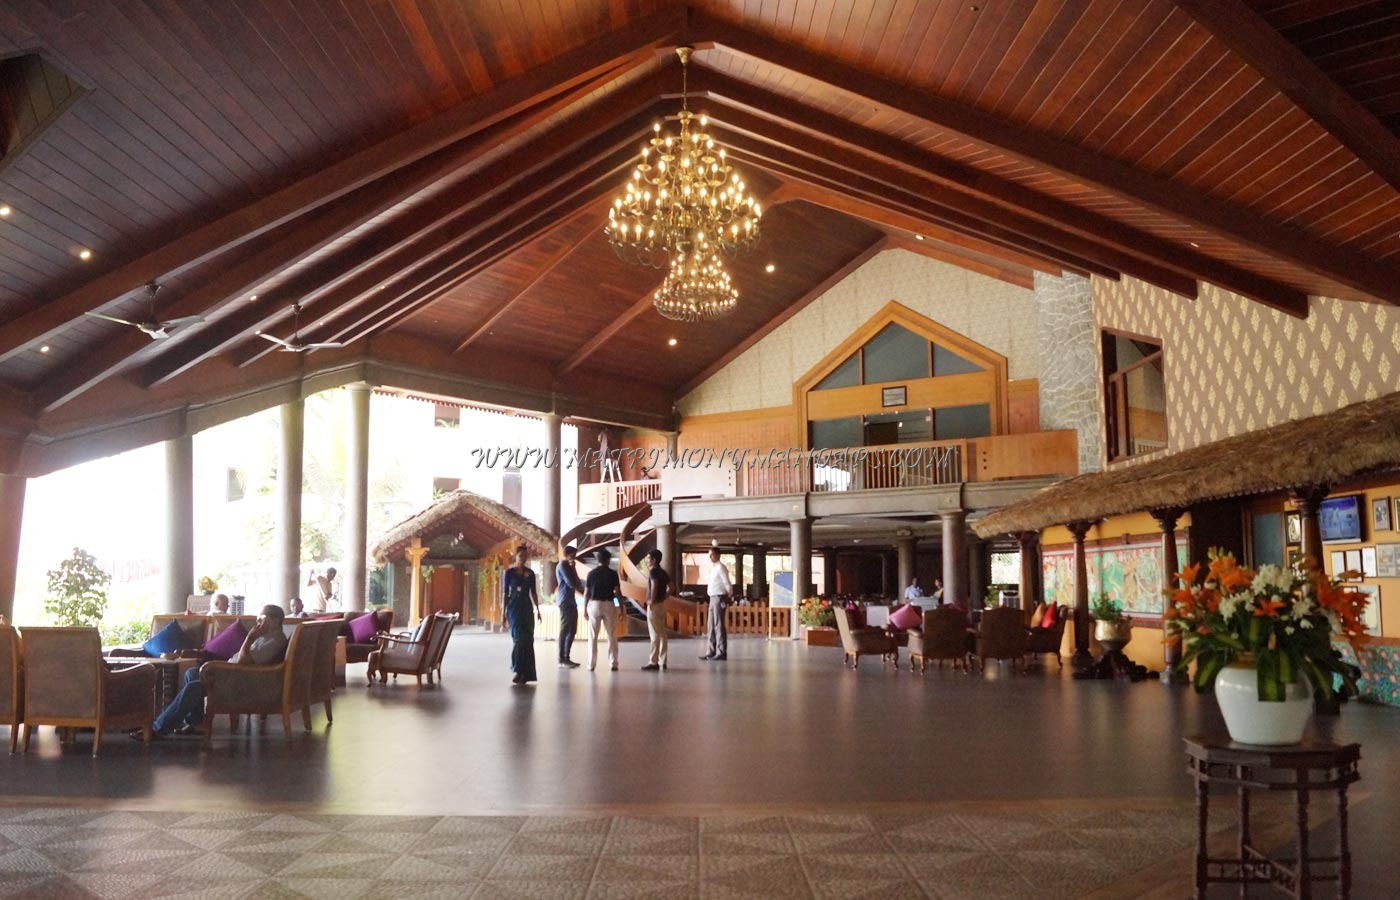 Find the availability of the Uday Samudra Leisure Beh Hotel - Cascade (A/C) in Kovalam, Trivandrum and avail special offers